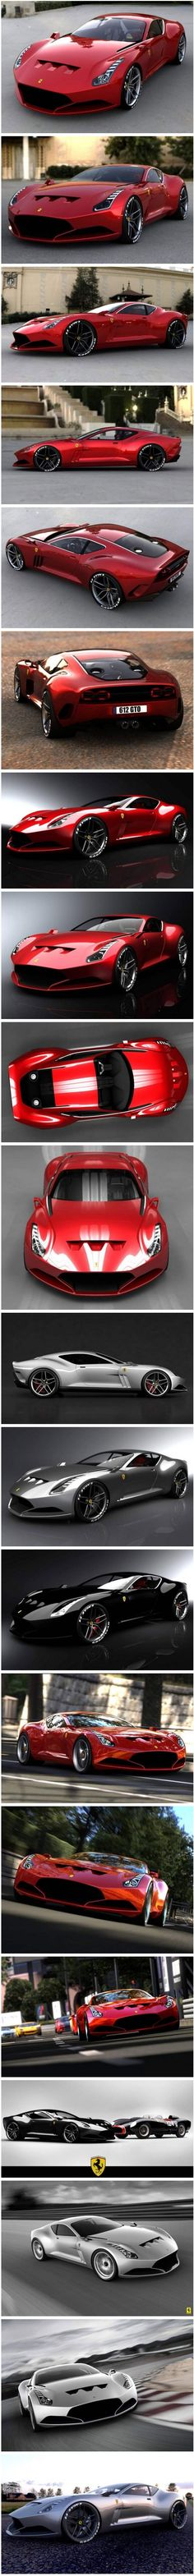 Ferrari 612 GTO Concept Car, which will hopefully become a reality one day soon.